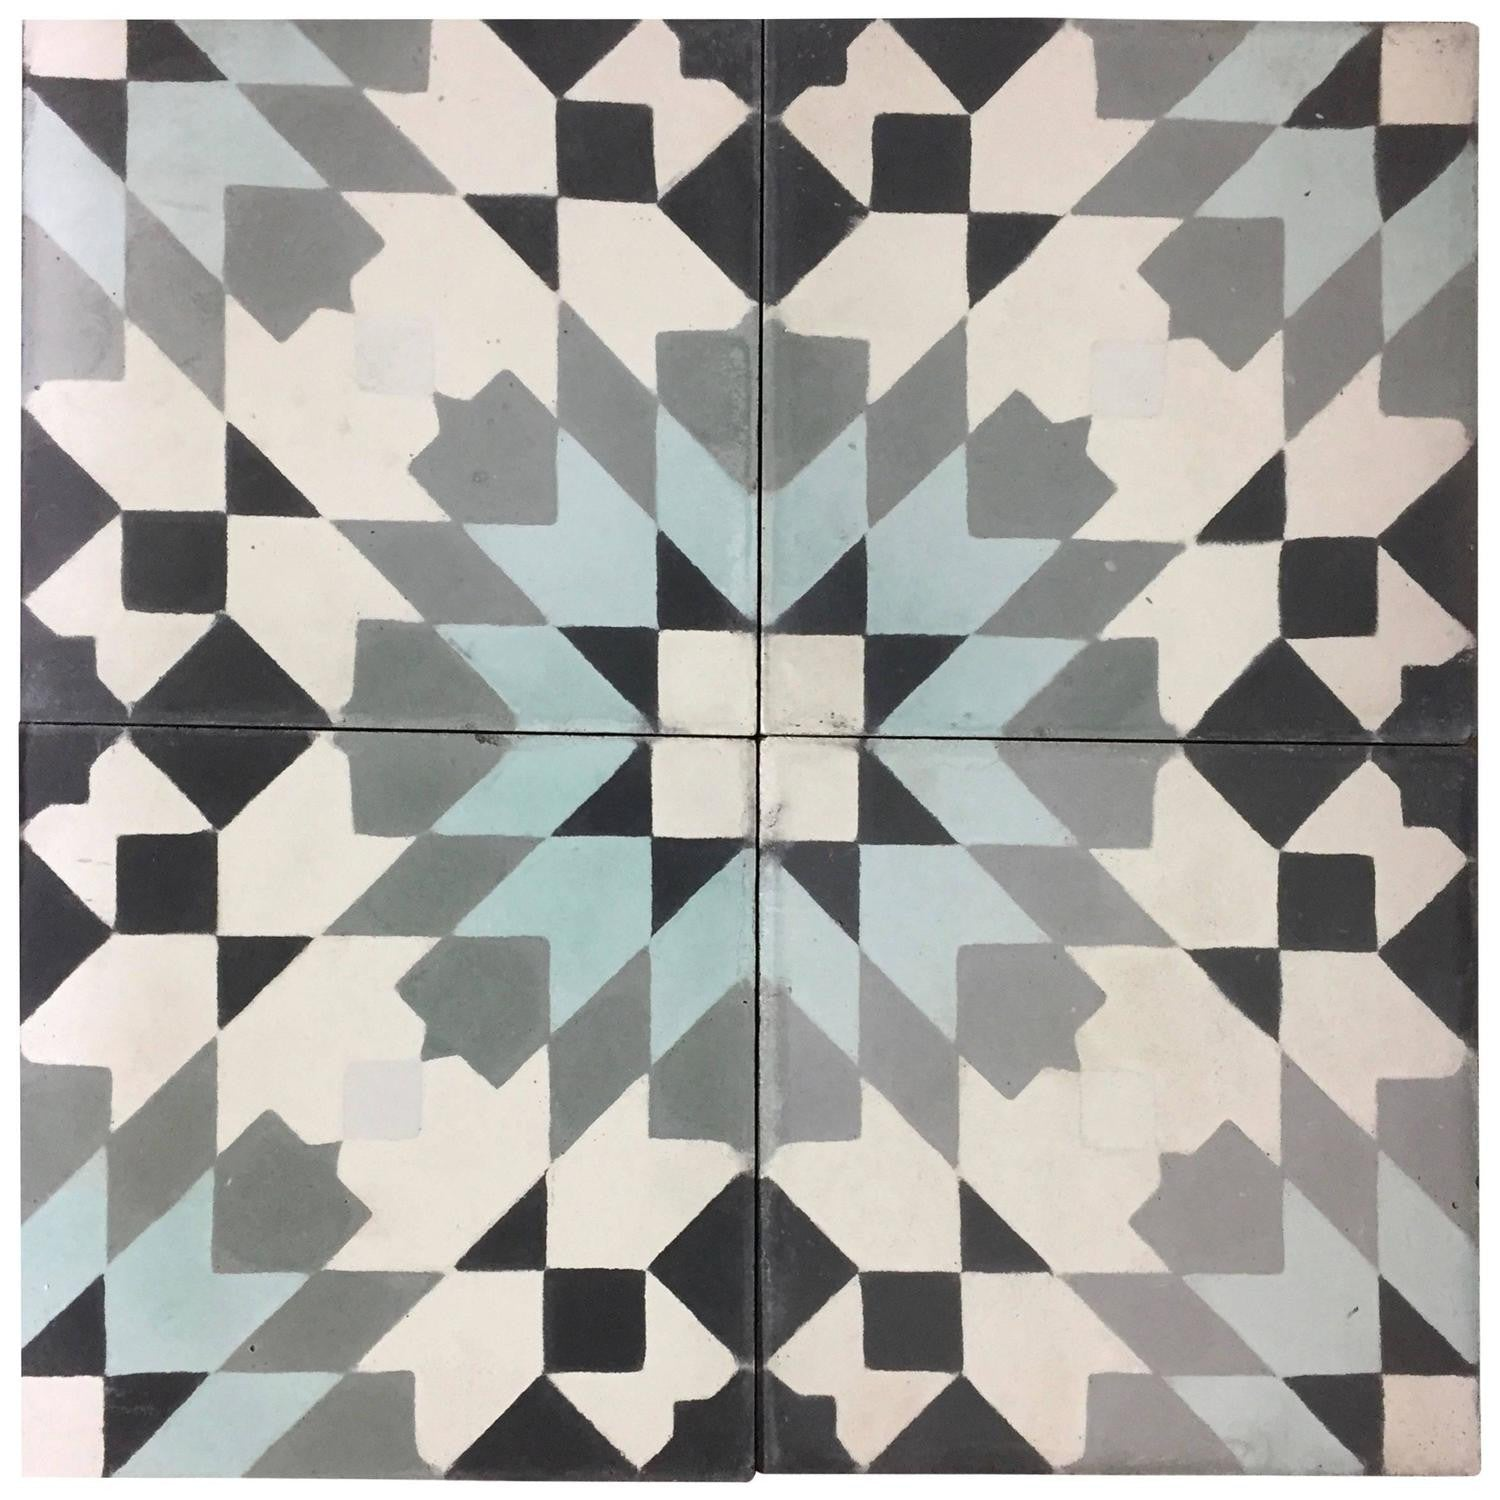 Tiles and Architectural - Haskell Antiques